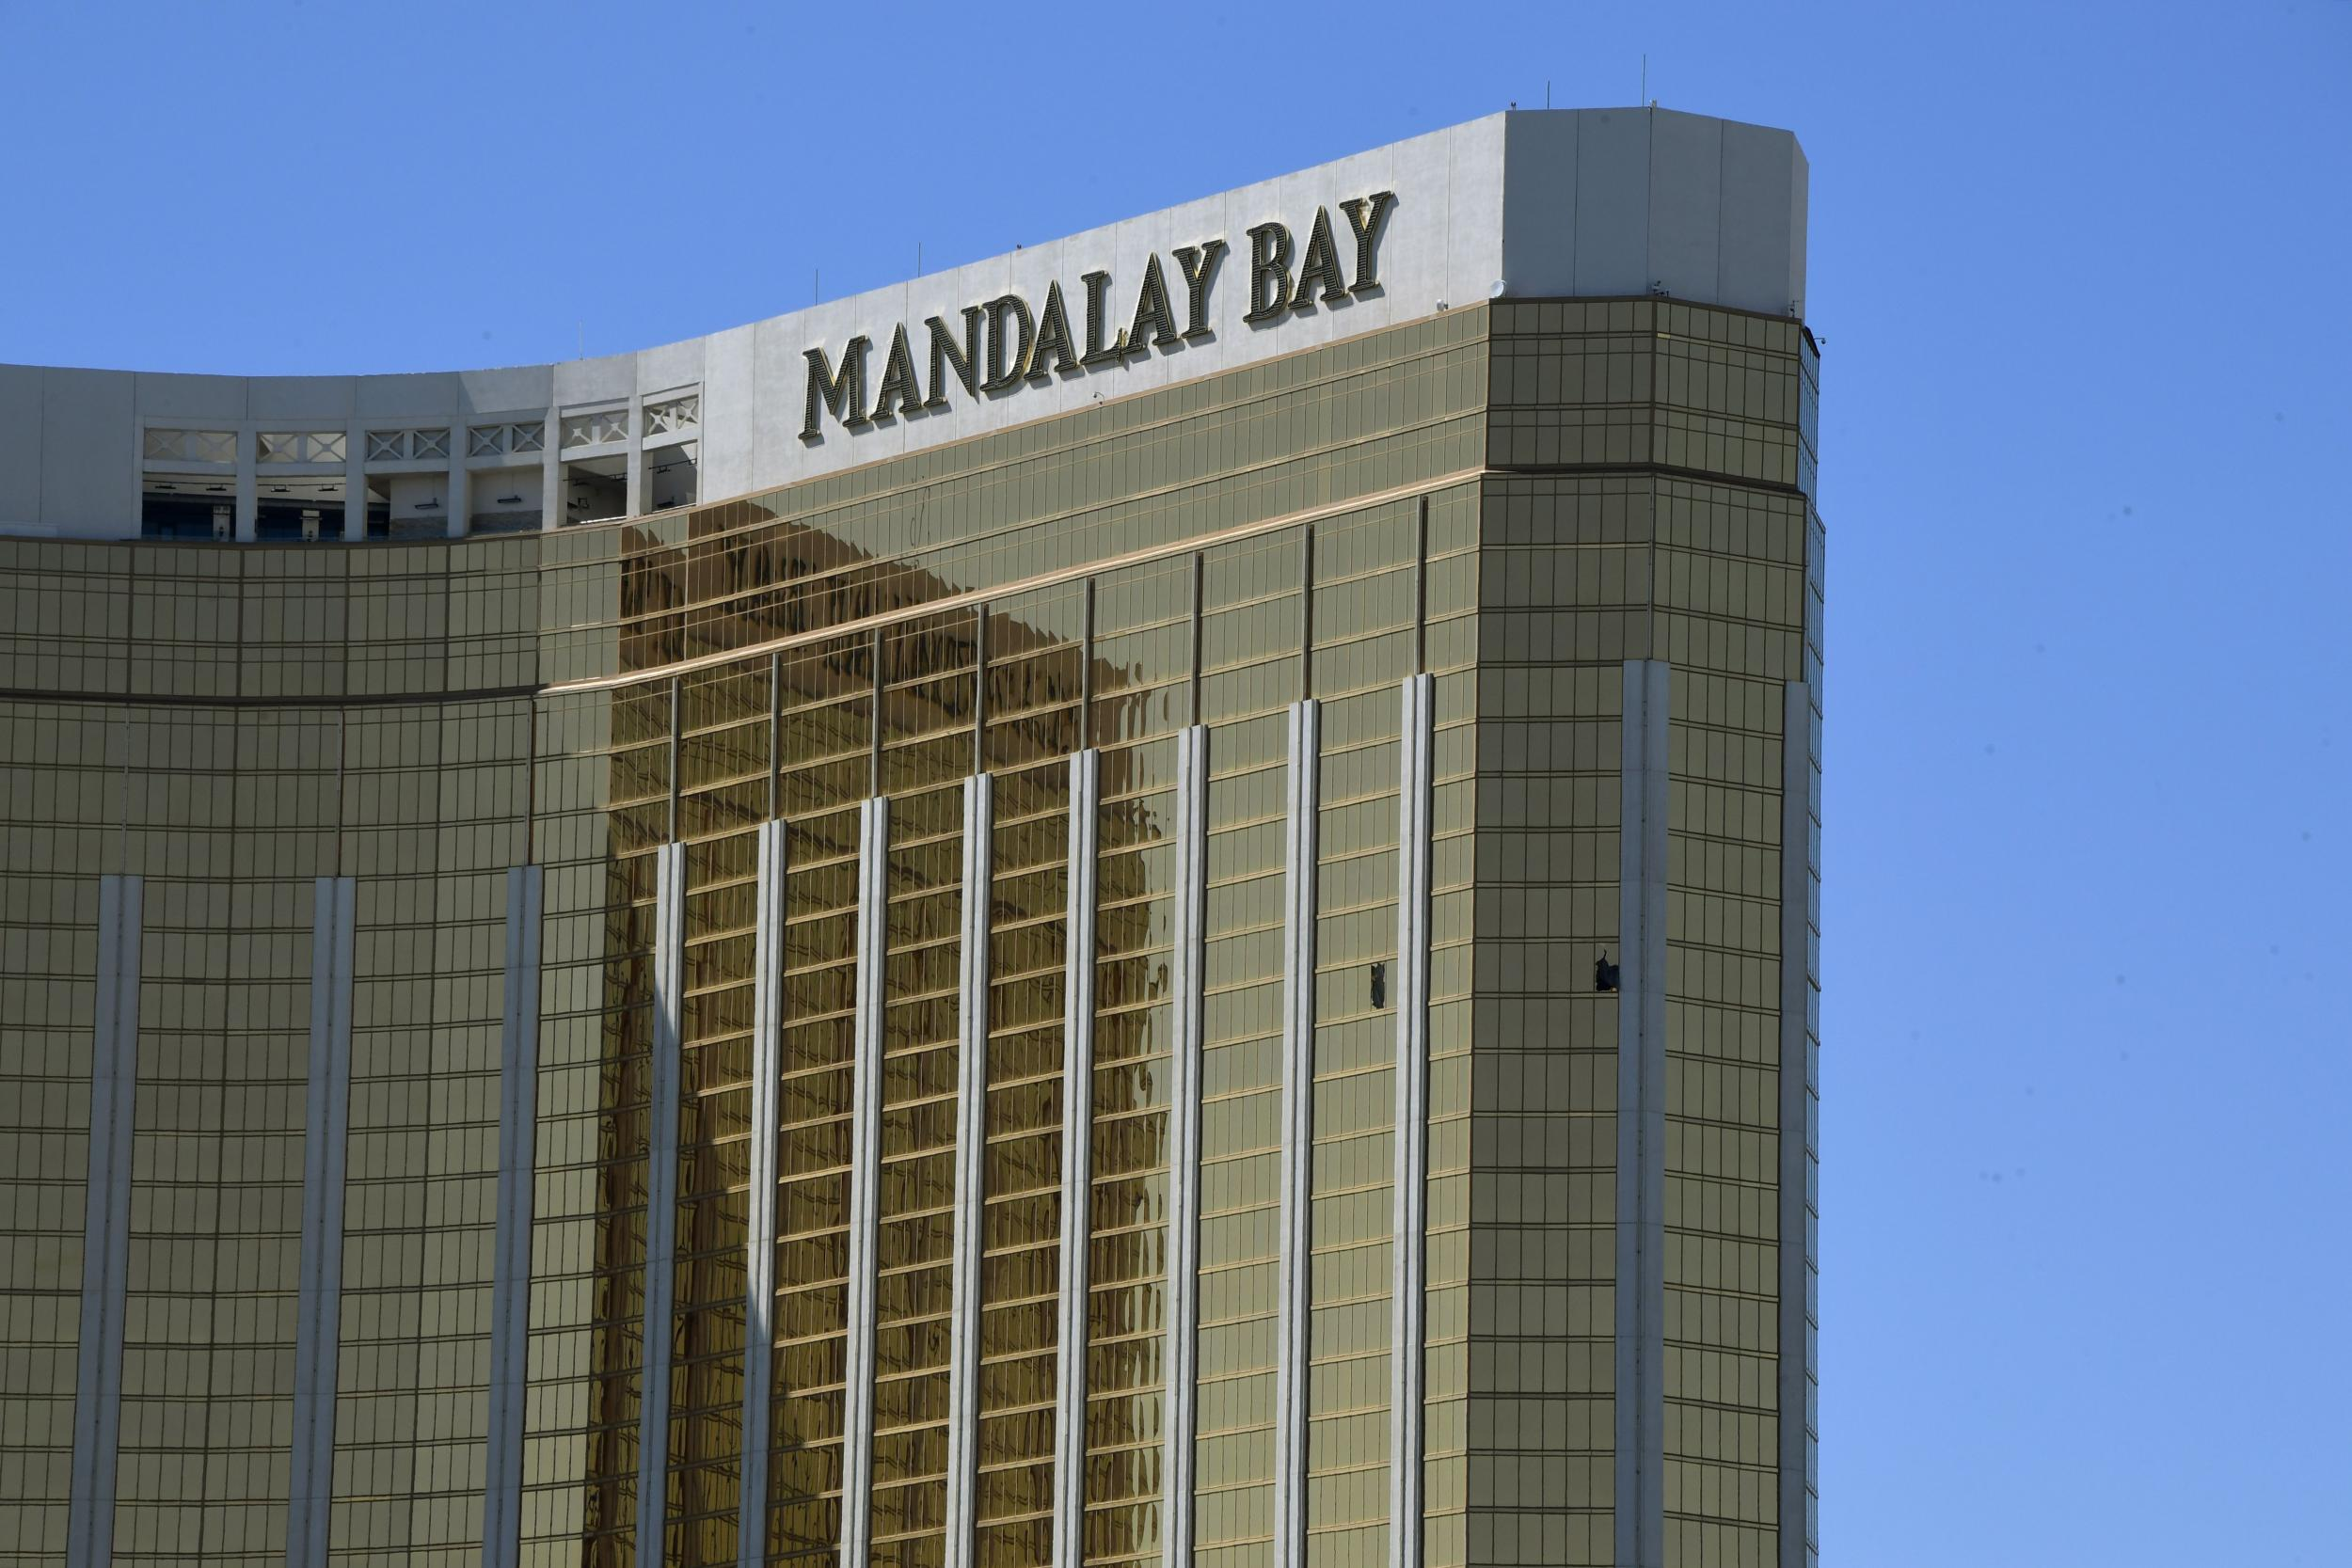 Las Vegas capturing victims 'attain landmark settlement expected to pay up to $800M' thumbnail